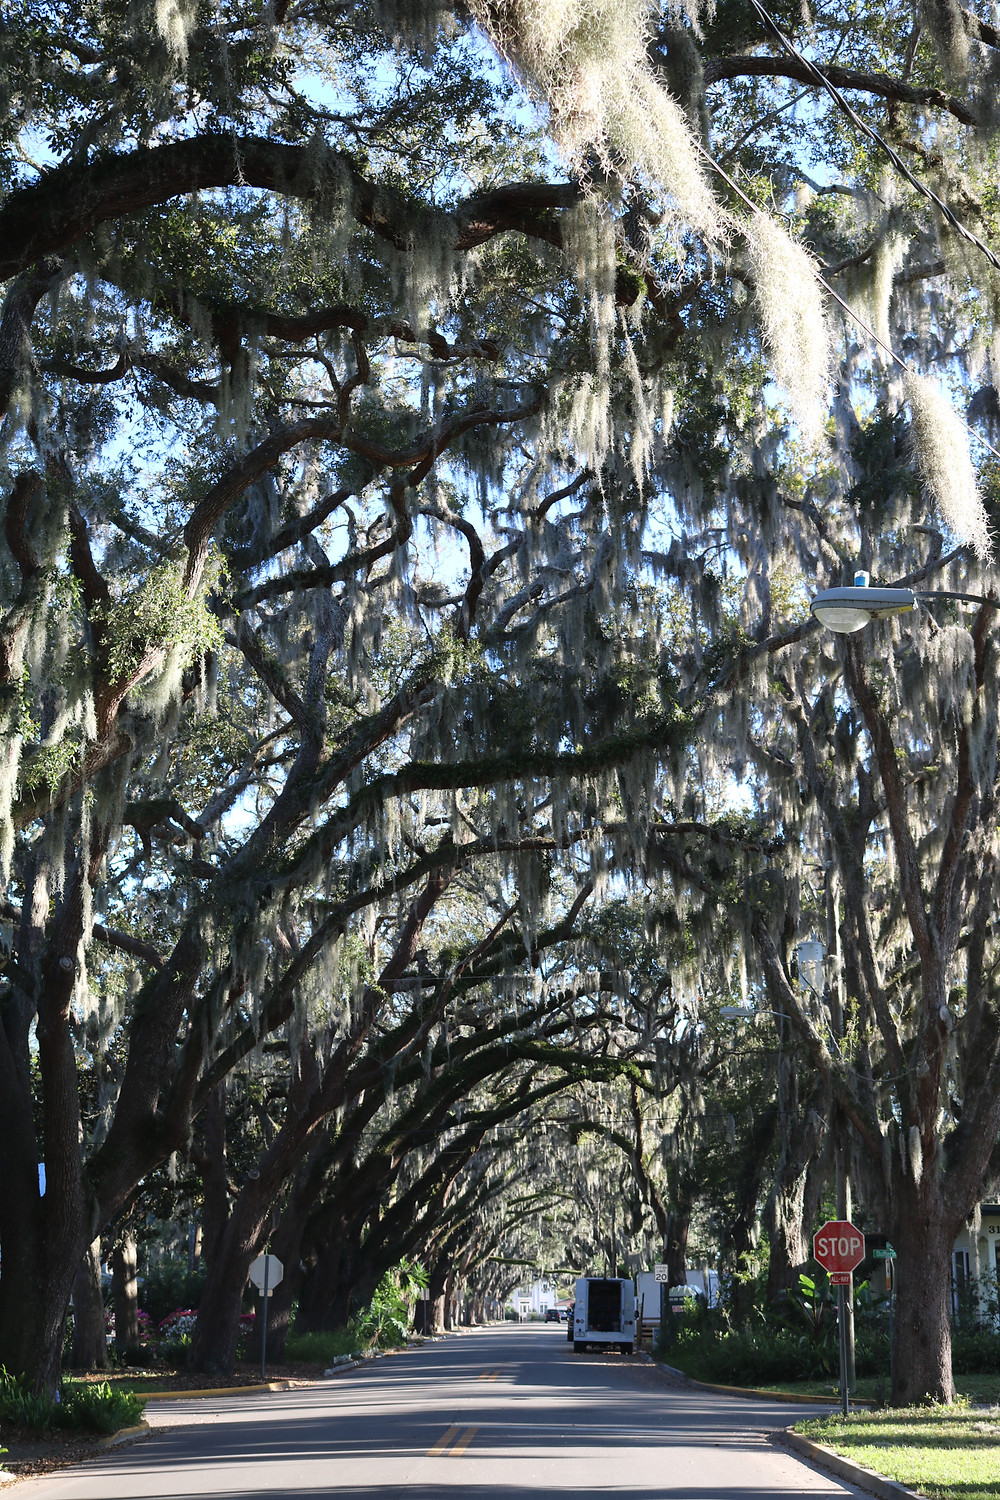 Oaks covered in Spanish moss